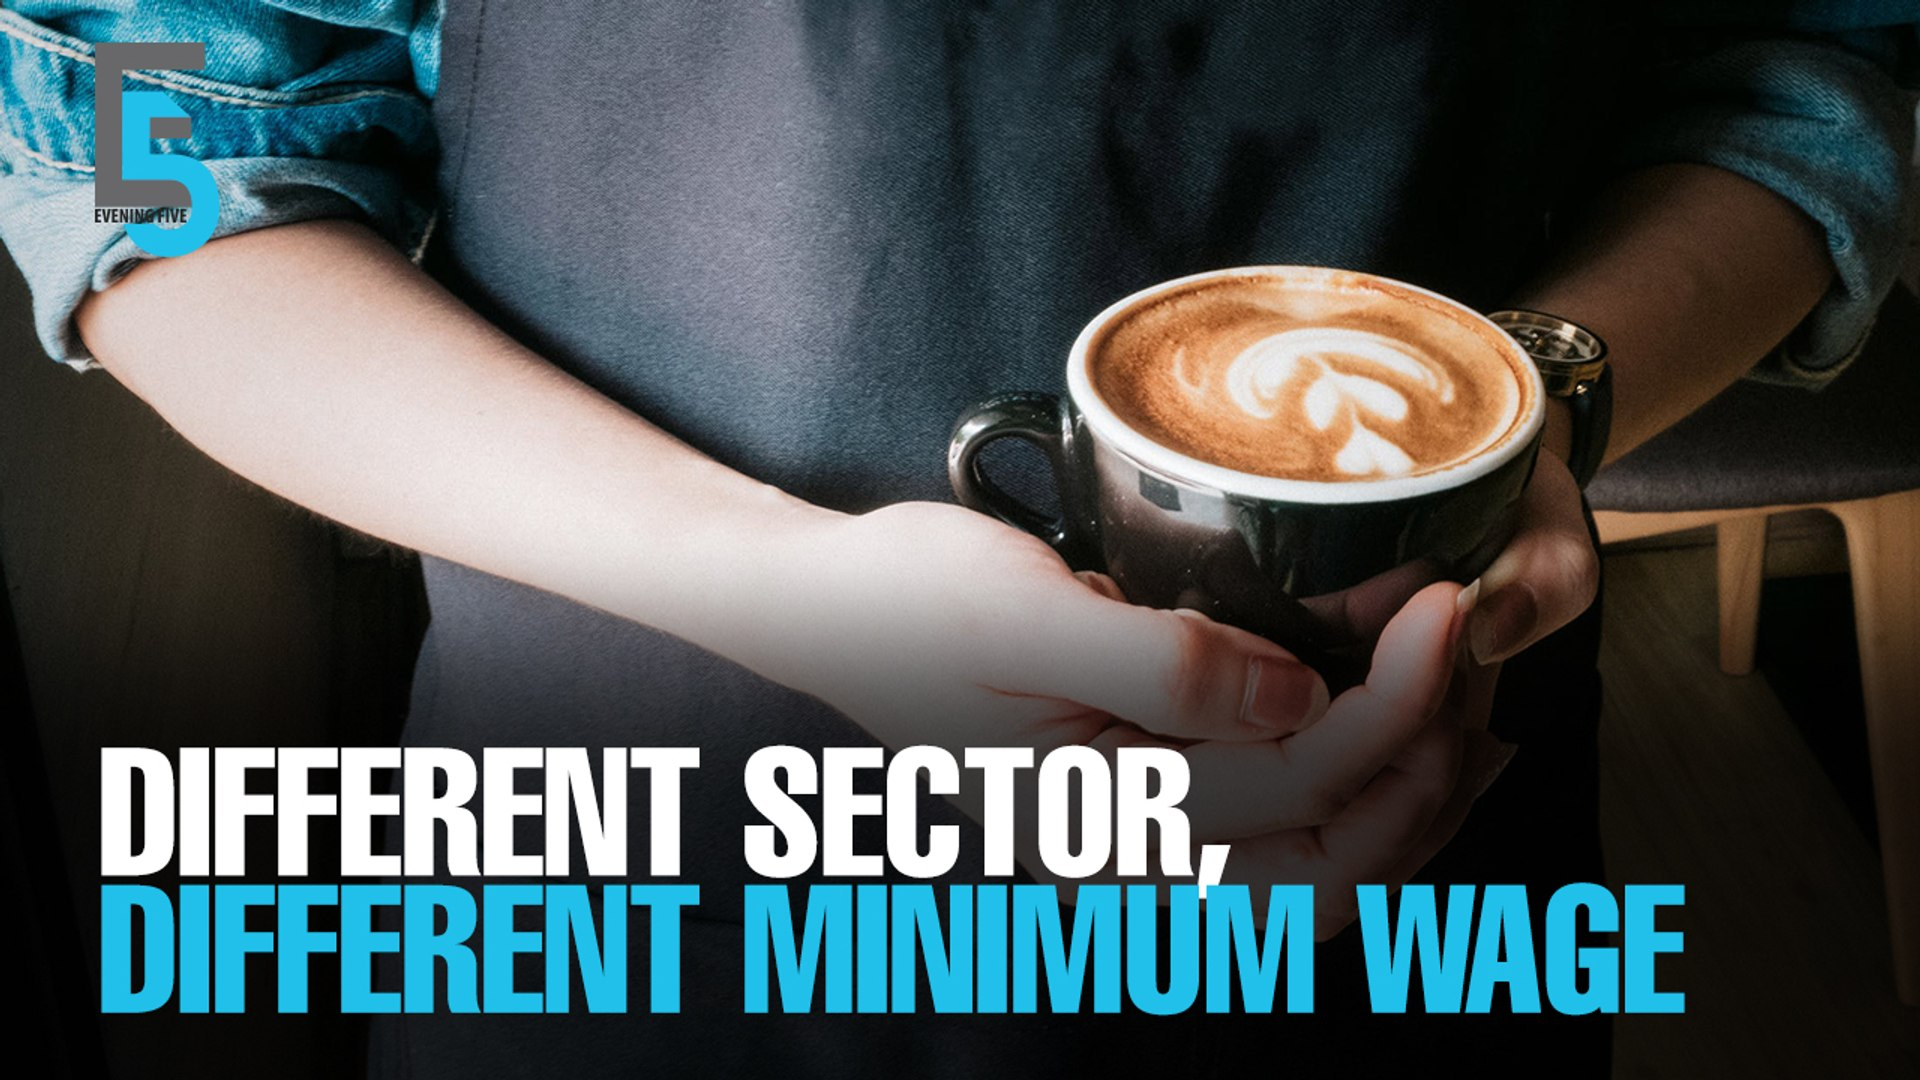 EVENING 5: Govt to review minimum wage